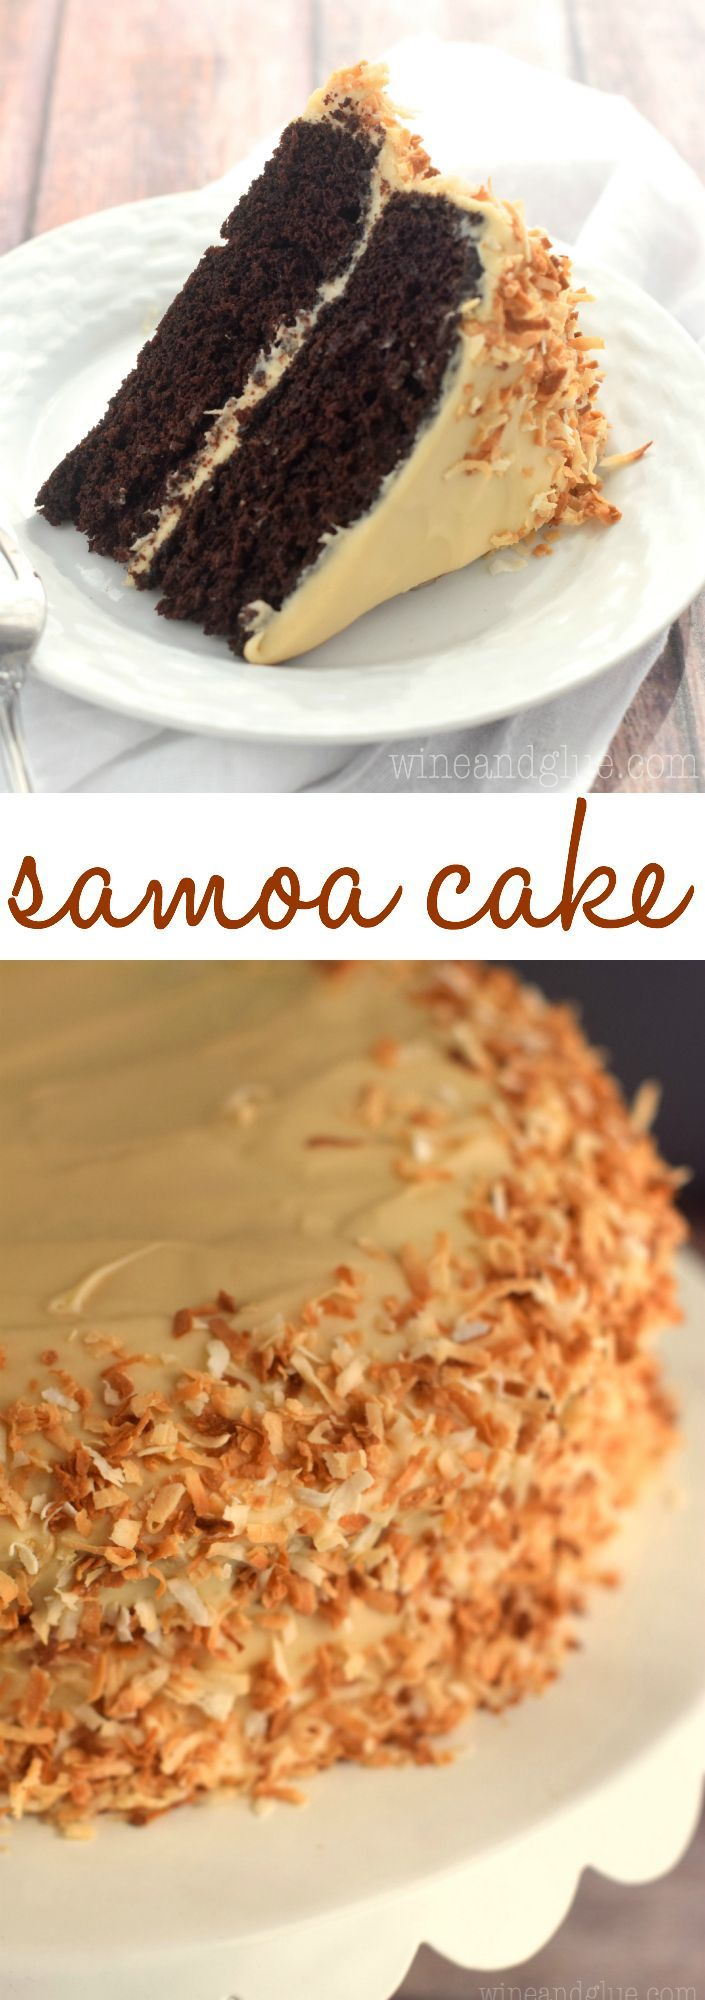 This Samoa Cake is the perfect combination of chocolate, caramel, and coconut. Moist, delicious, and perfectly rich.